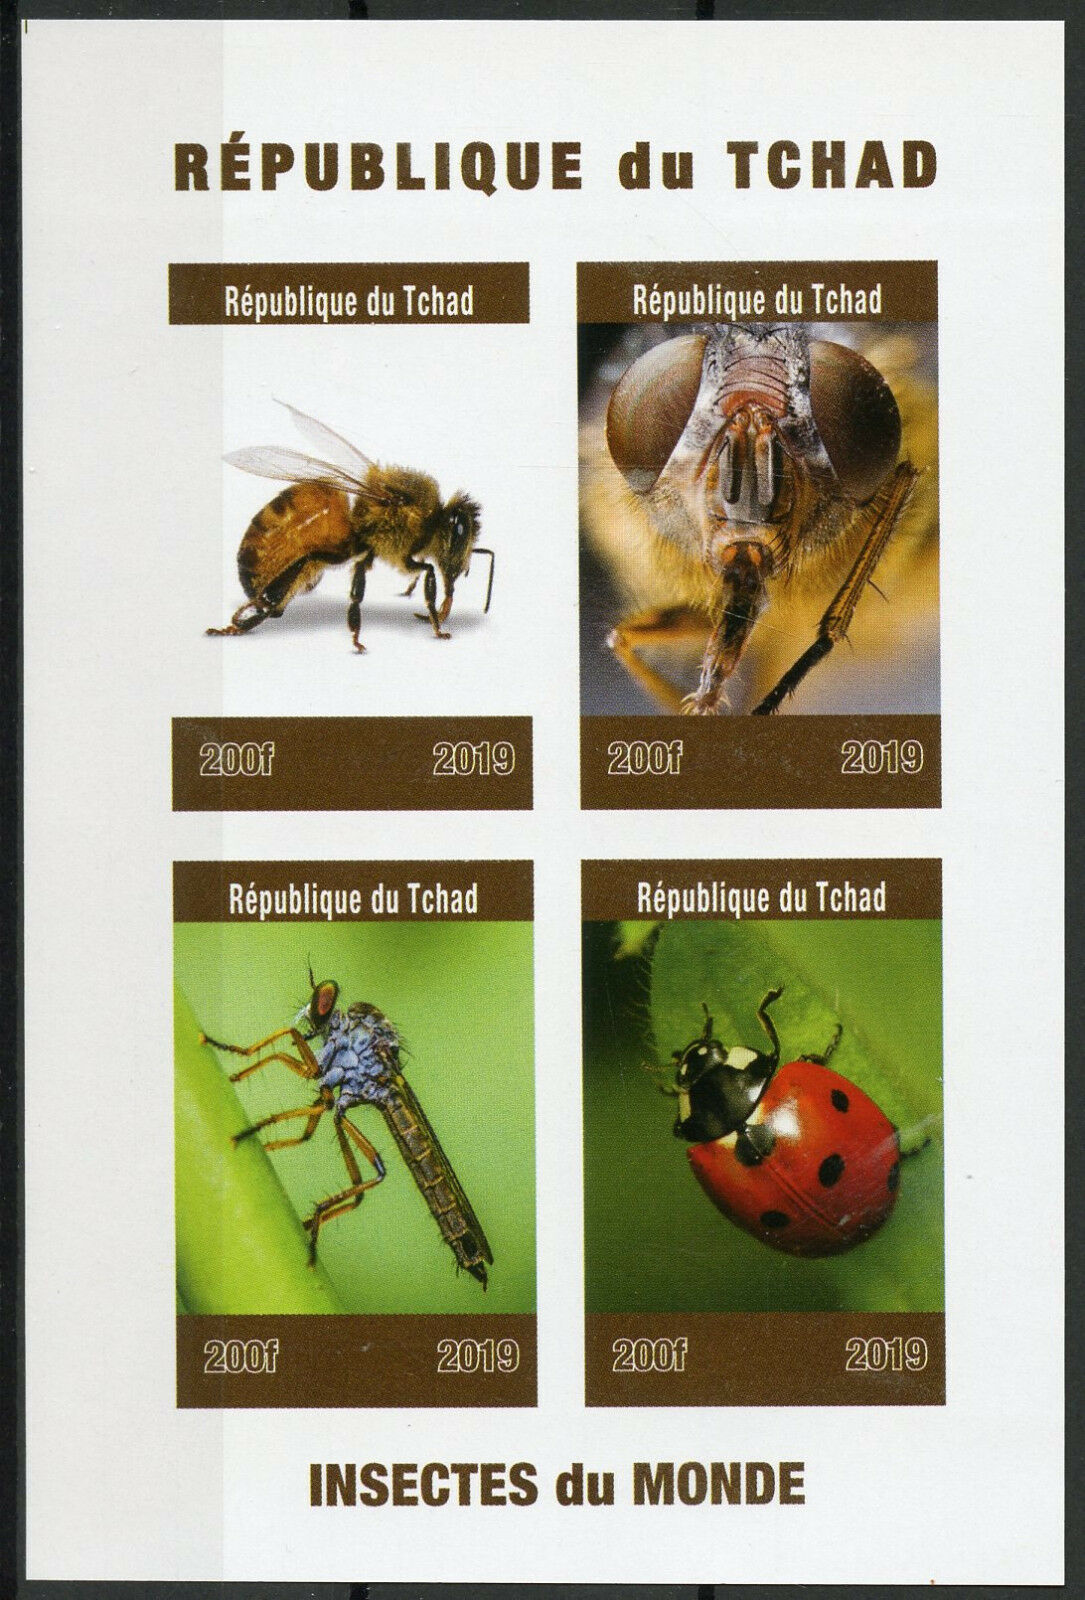 Republic of Chad - Insects of the World (January 1, 2019) sheet of 4, imperforate